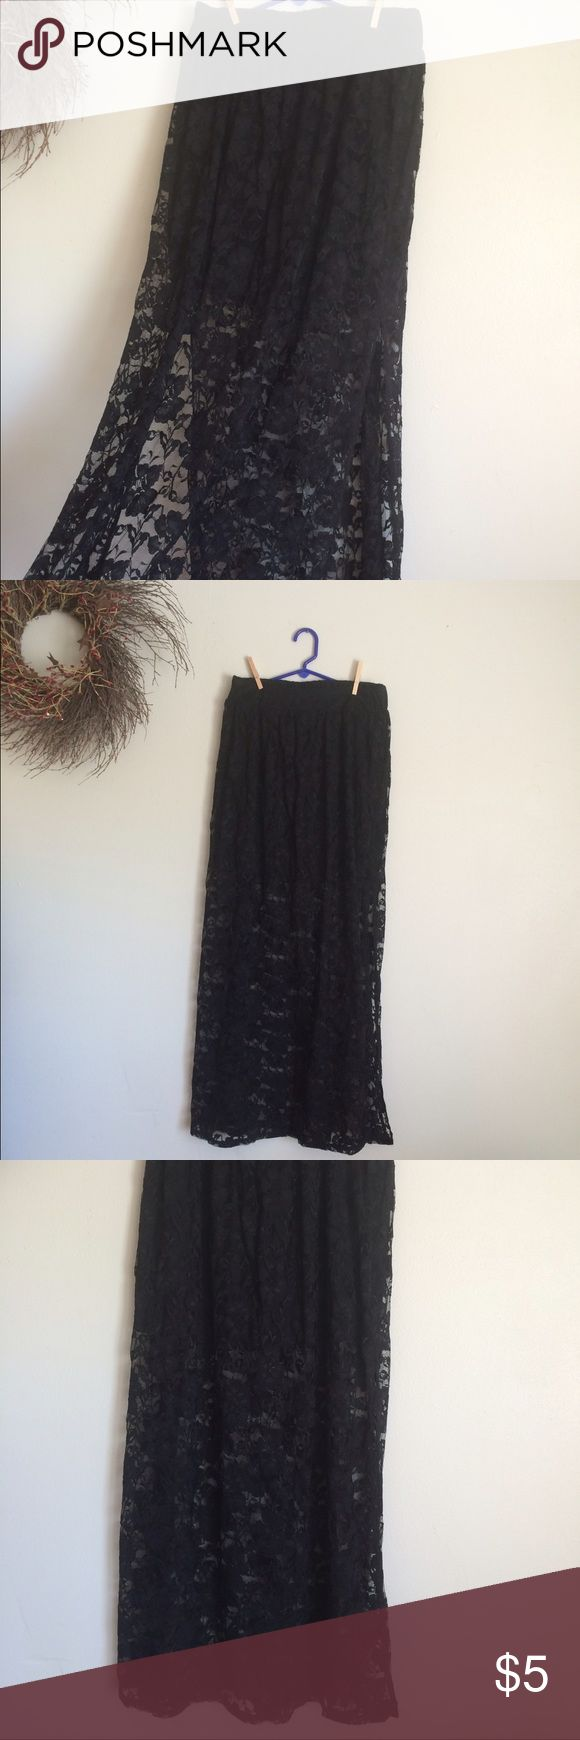 Vanity maxi skirt lace and mini skirt sexy Has a mini under the lace and slit up to the thigh Vanity Skirts Maxi